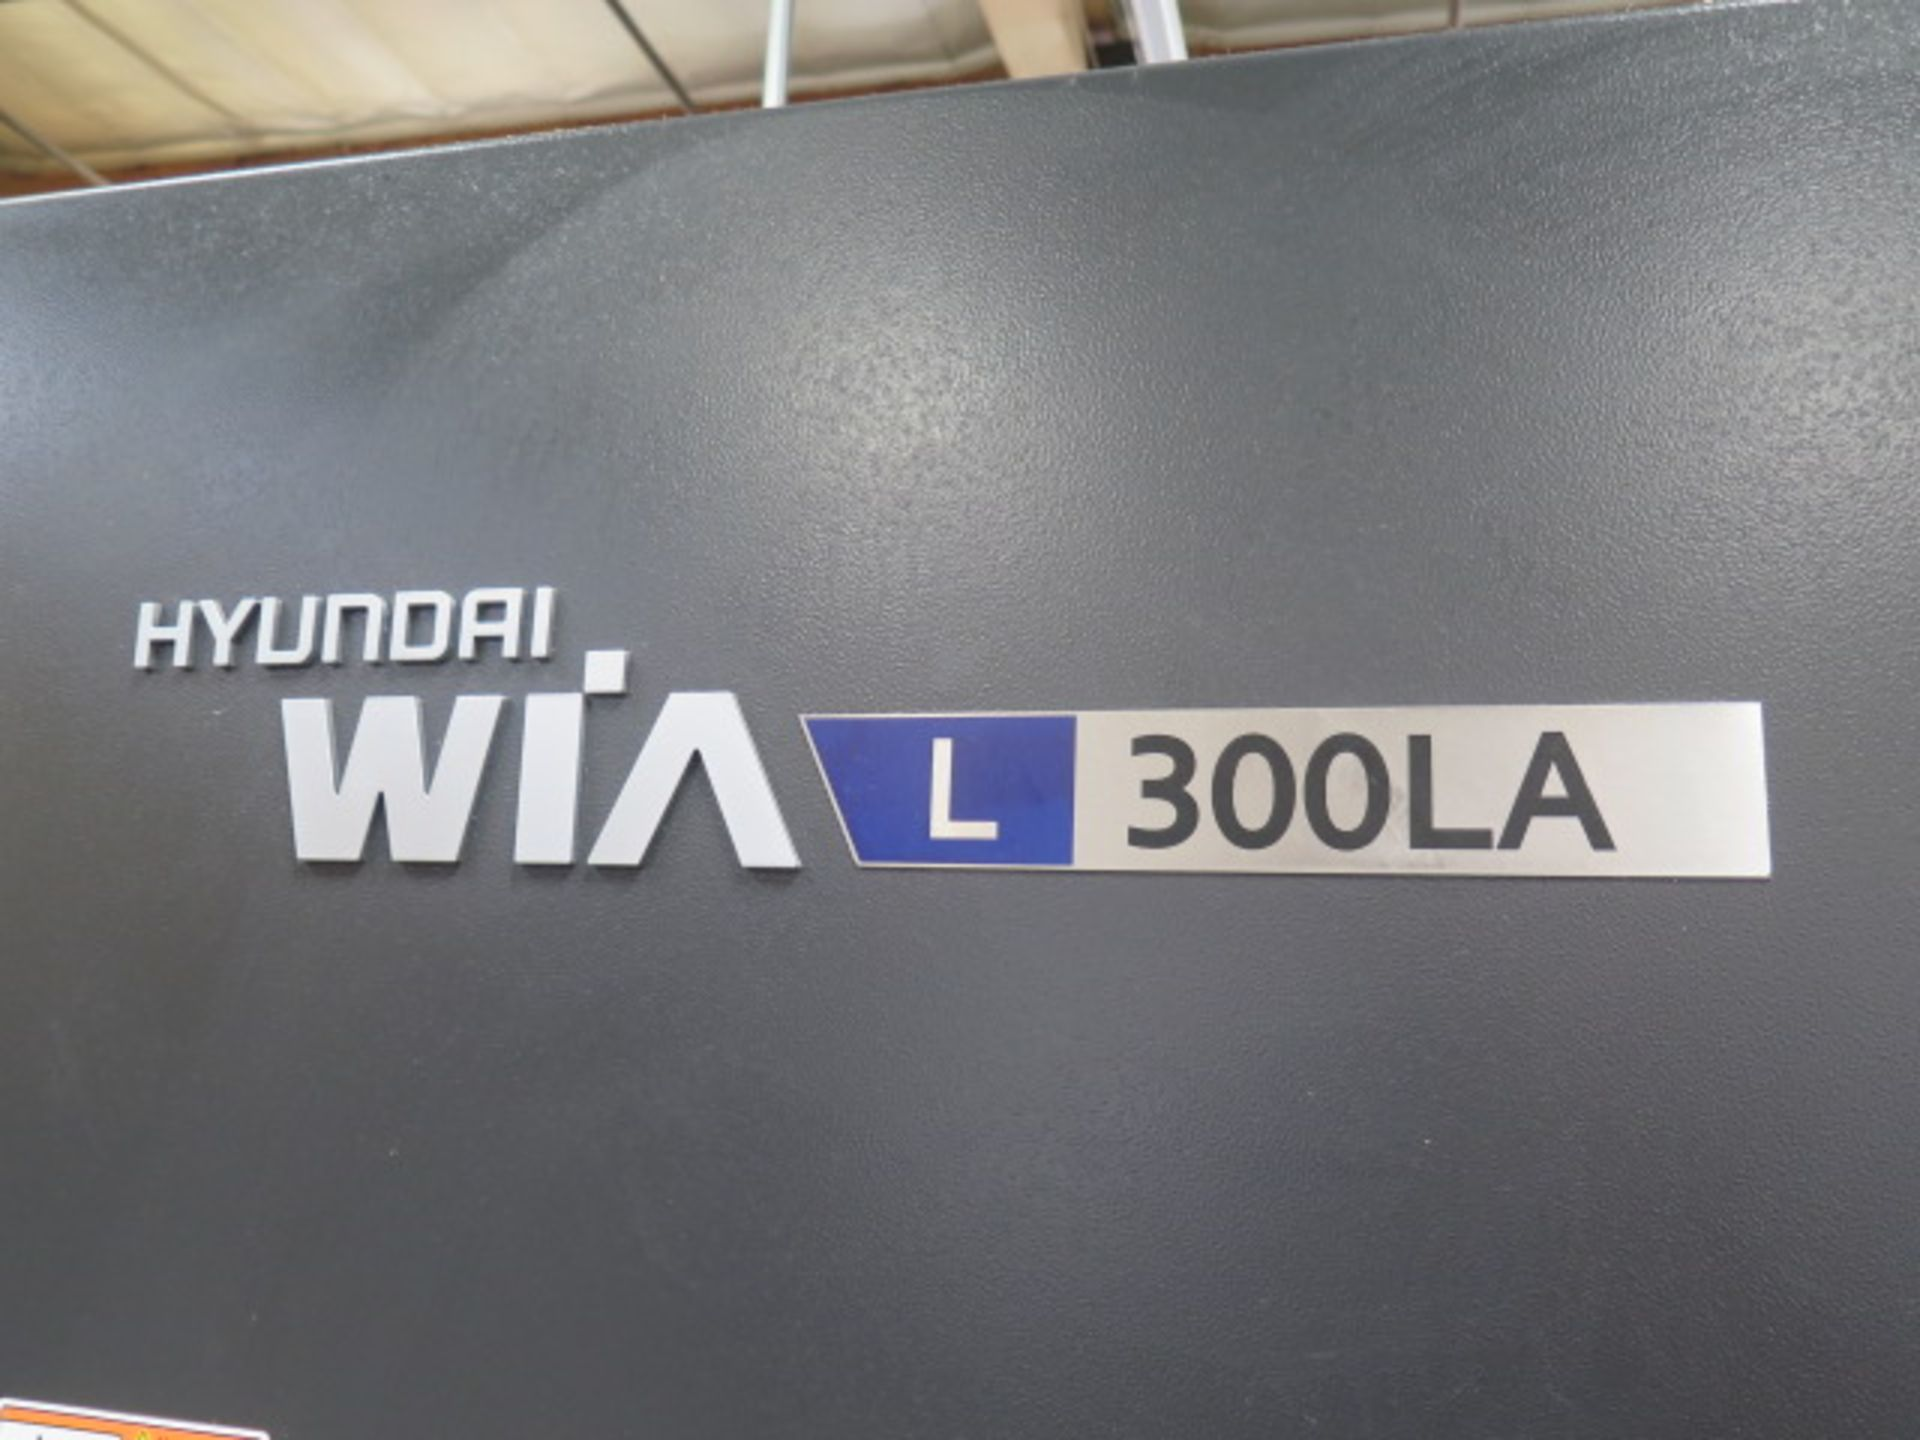 2017 Hyundai WIA L300LA CNC Turning Center s/n G3726-0108 w/ Fanuc i-Series Controls, SOLD AS IS - Image 3 of 18